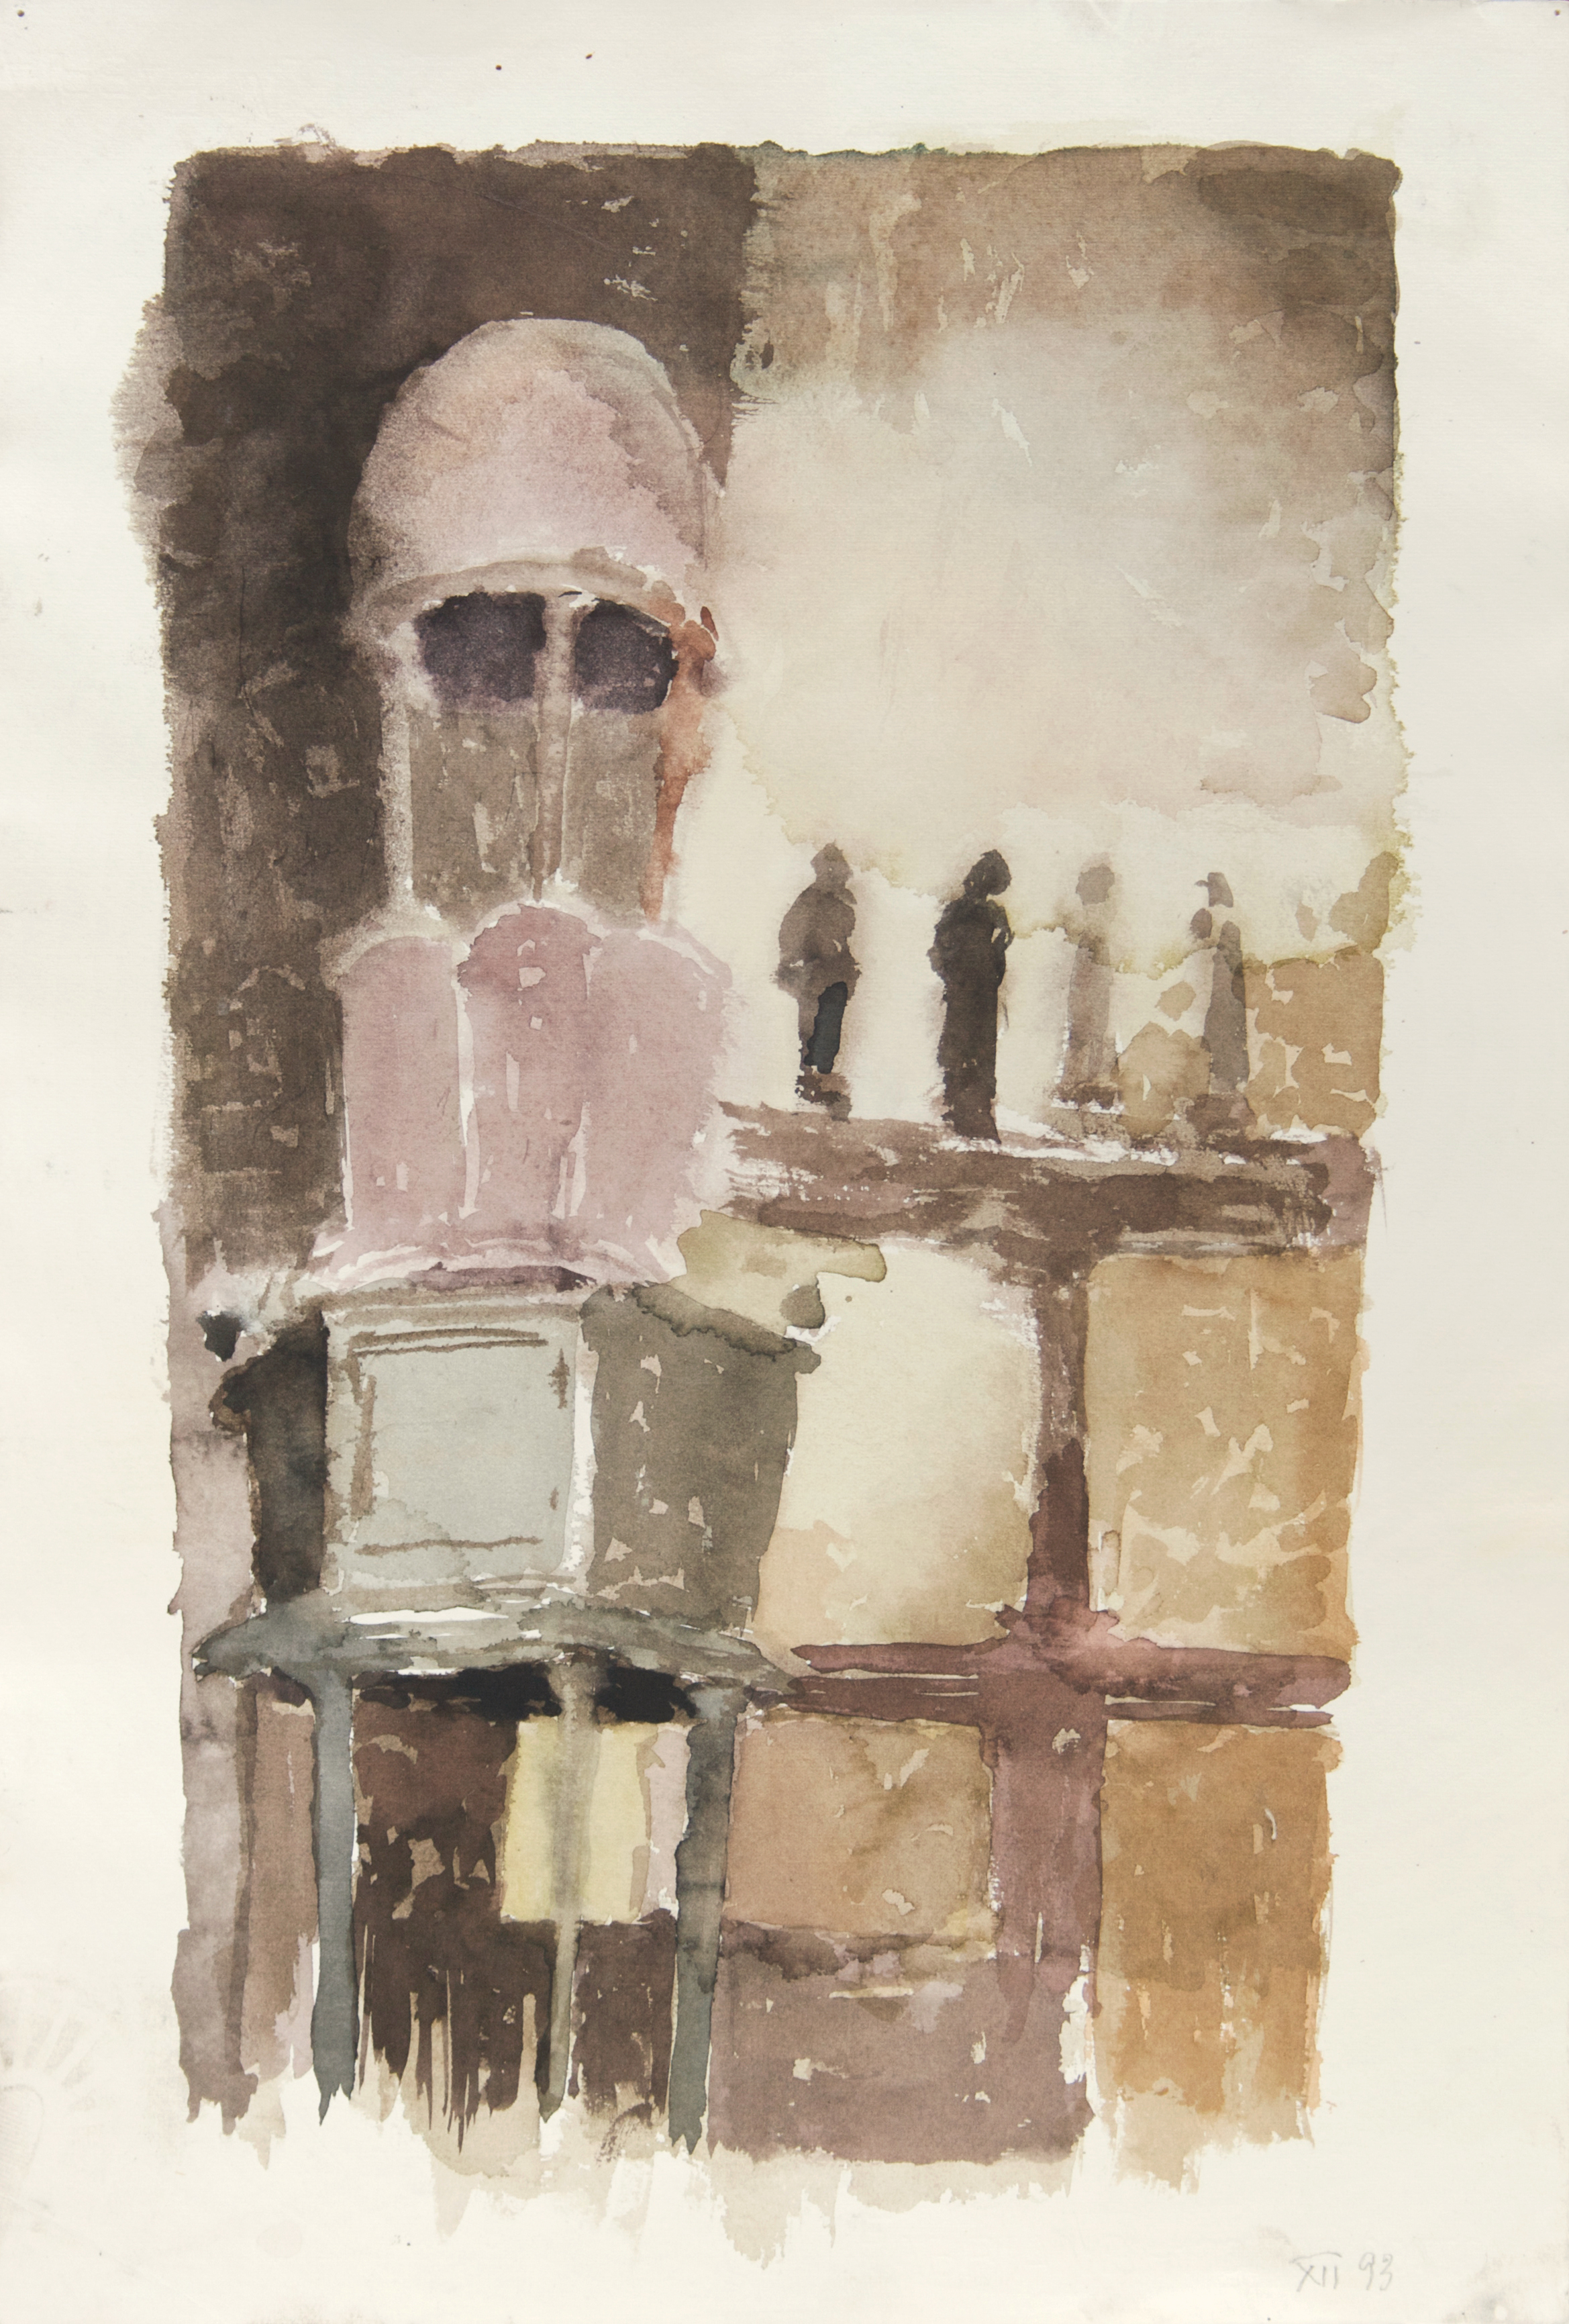 1993_Interior_of_San_Marco_watercolour_on_paper_22x15in_WPF301.jpg